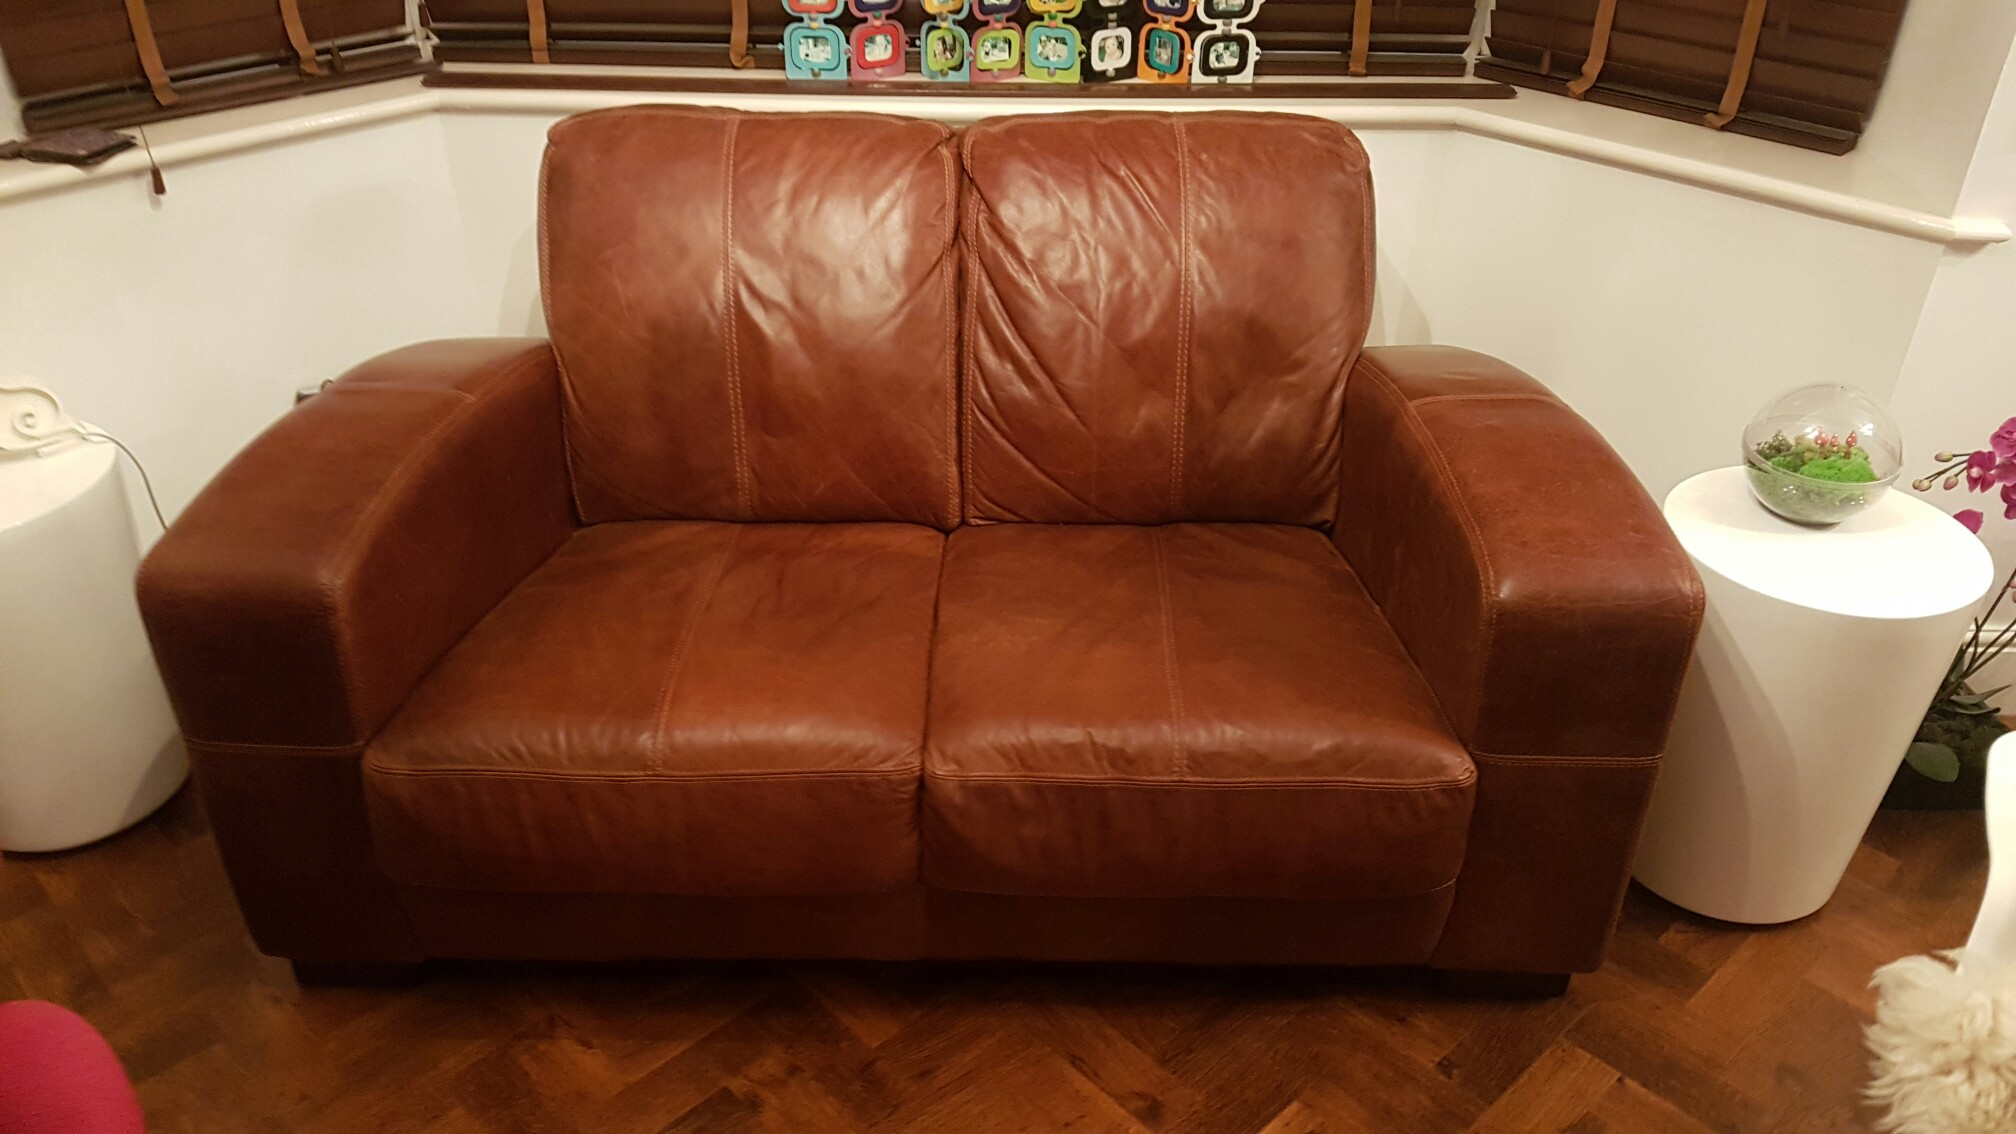 Distressed Leather Sofa For Sale In Uk View 85 Bargains